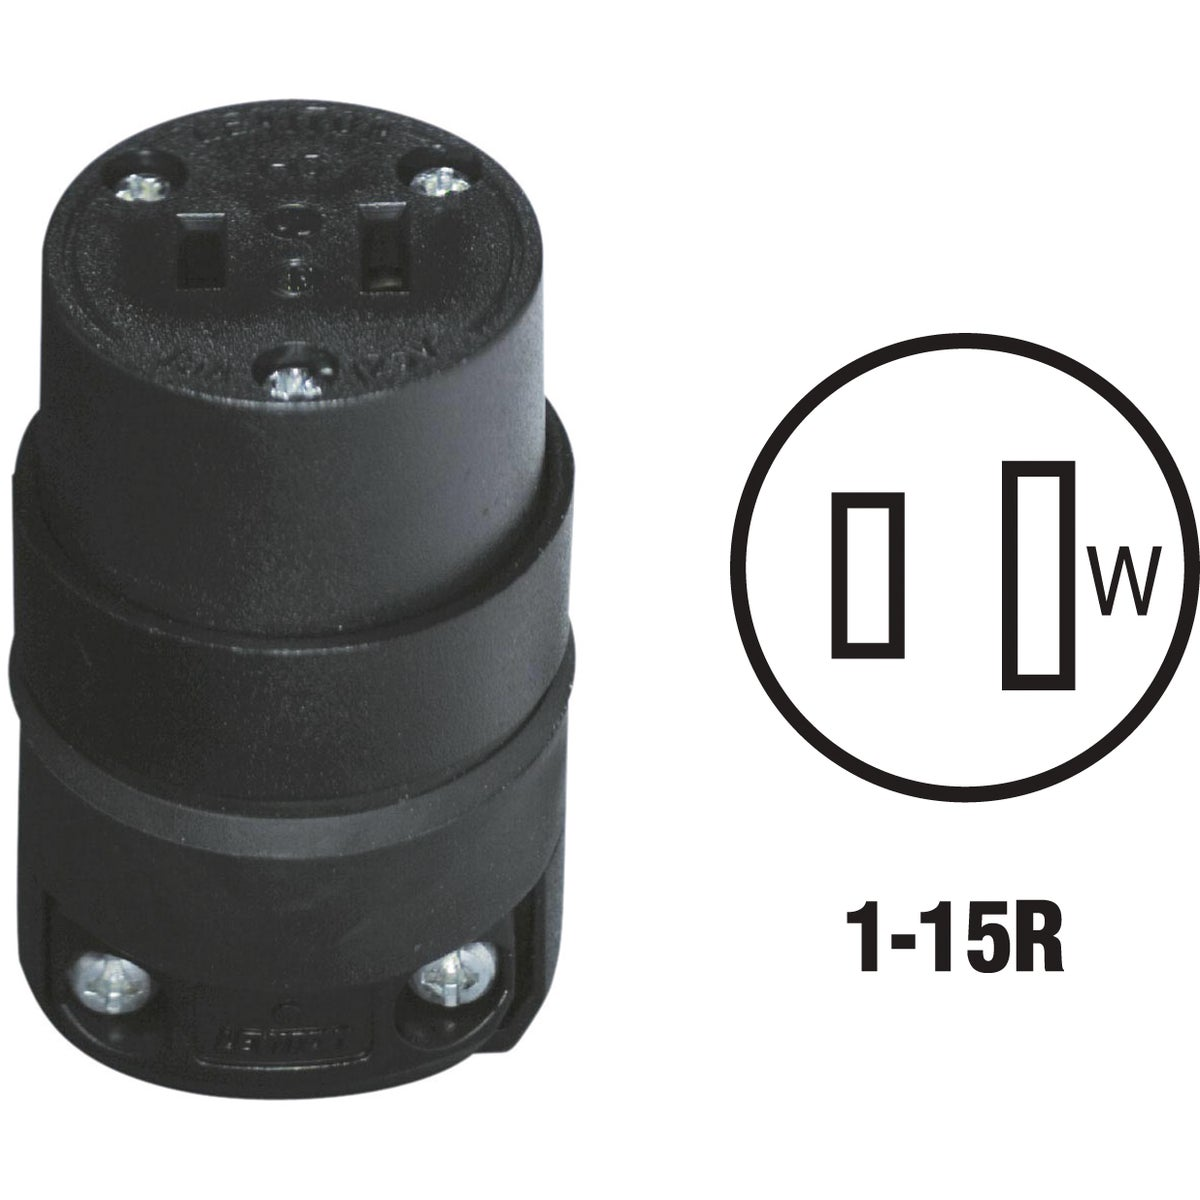 BLK CORD CONNECTOR - 115CR by Leviton Mfg Co